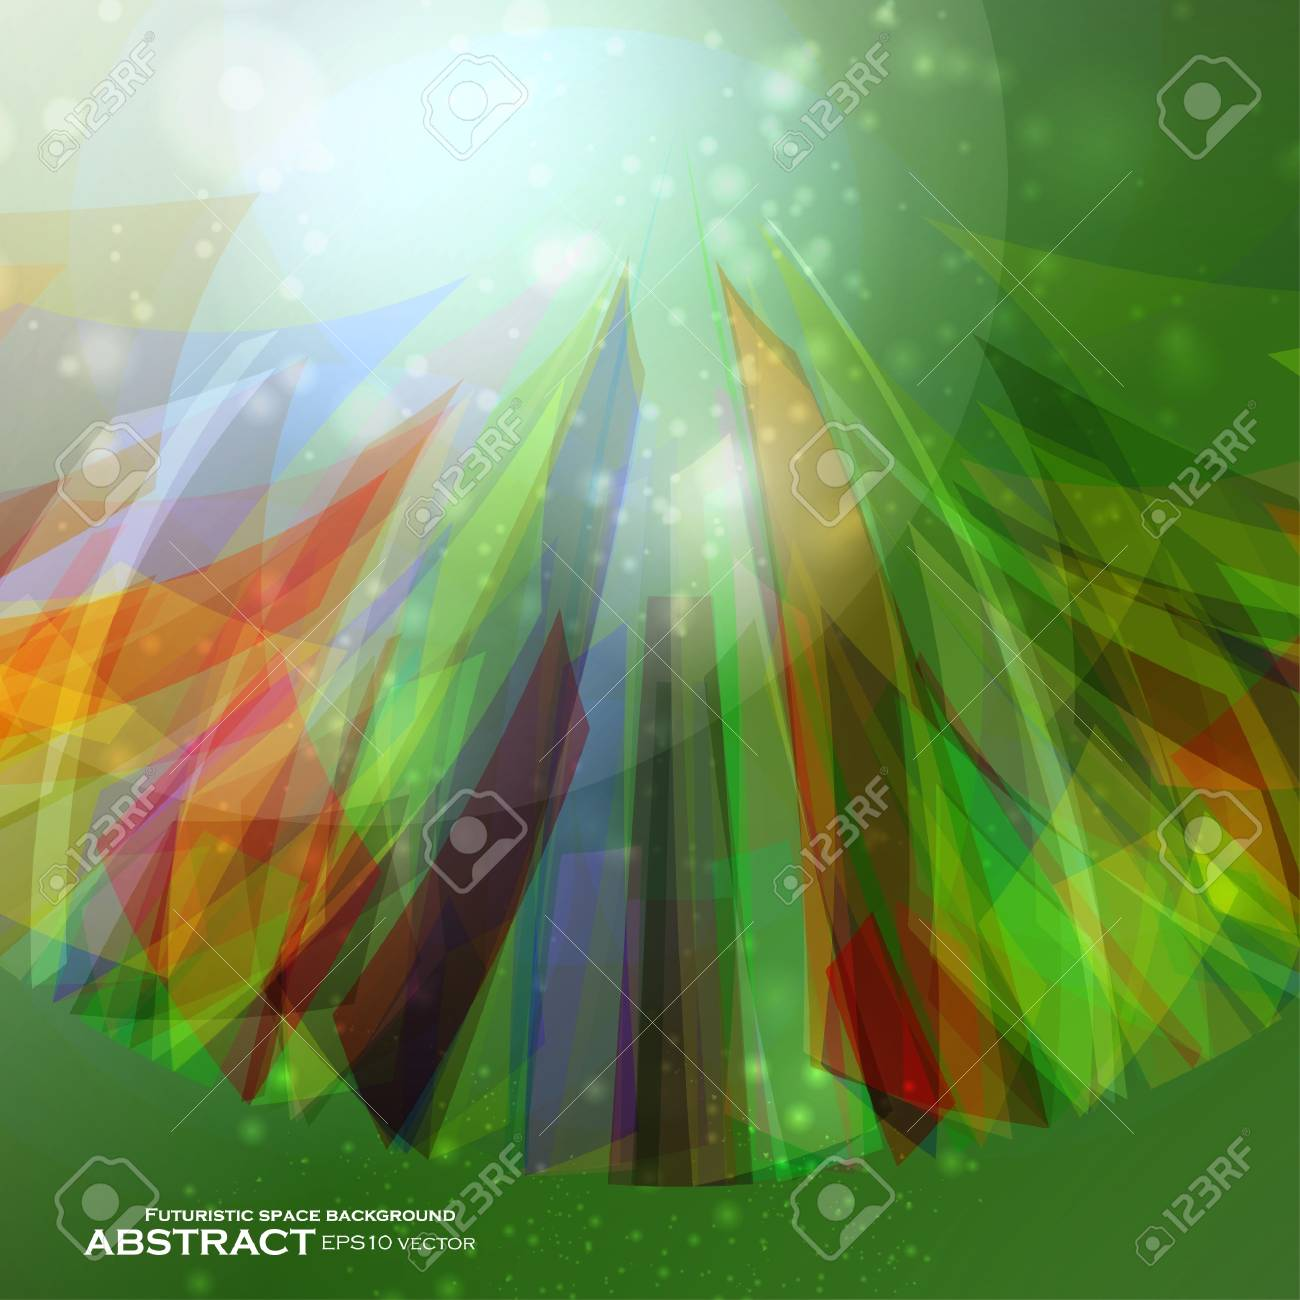 Abstract  background, futuristic colorful strip, stylish illustration Stock Vector - 12723682